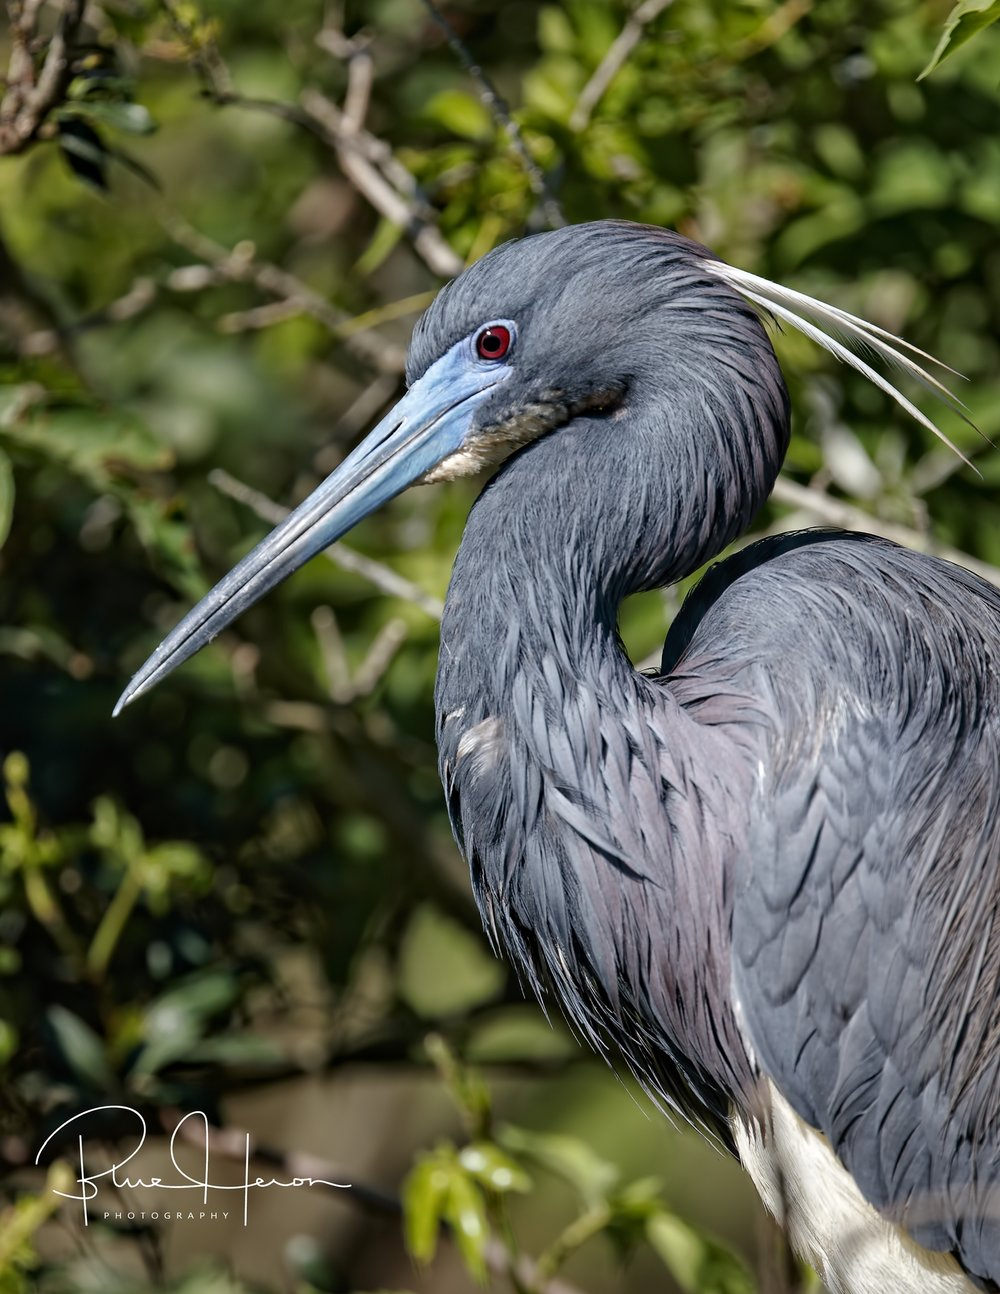 Tricolored Herons get breeding plumes on top, red eyes and blue bill coloration